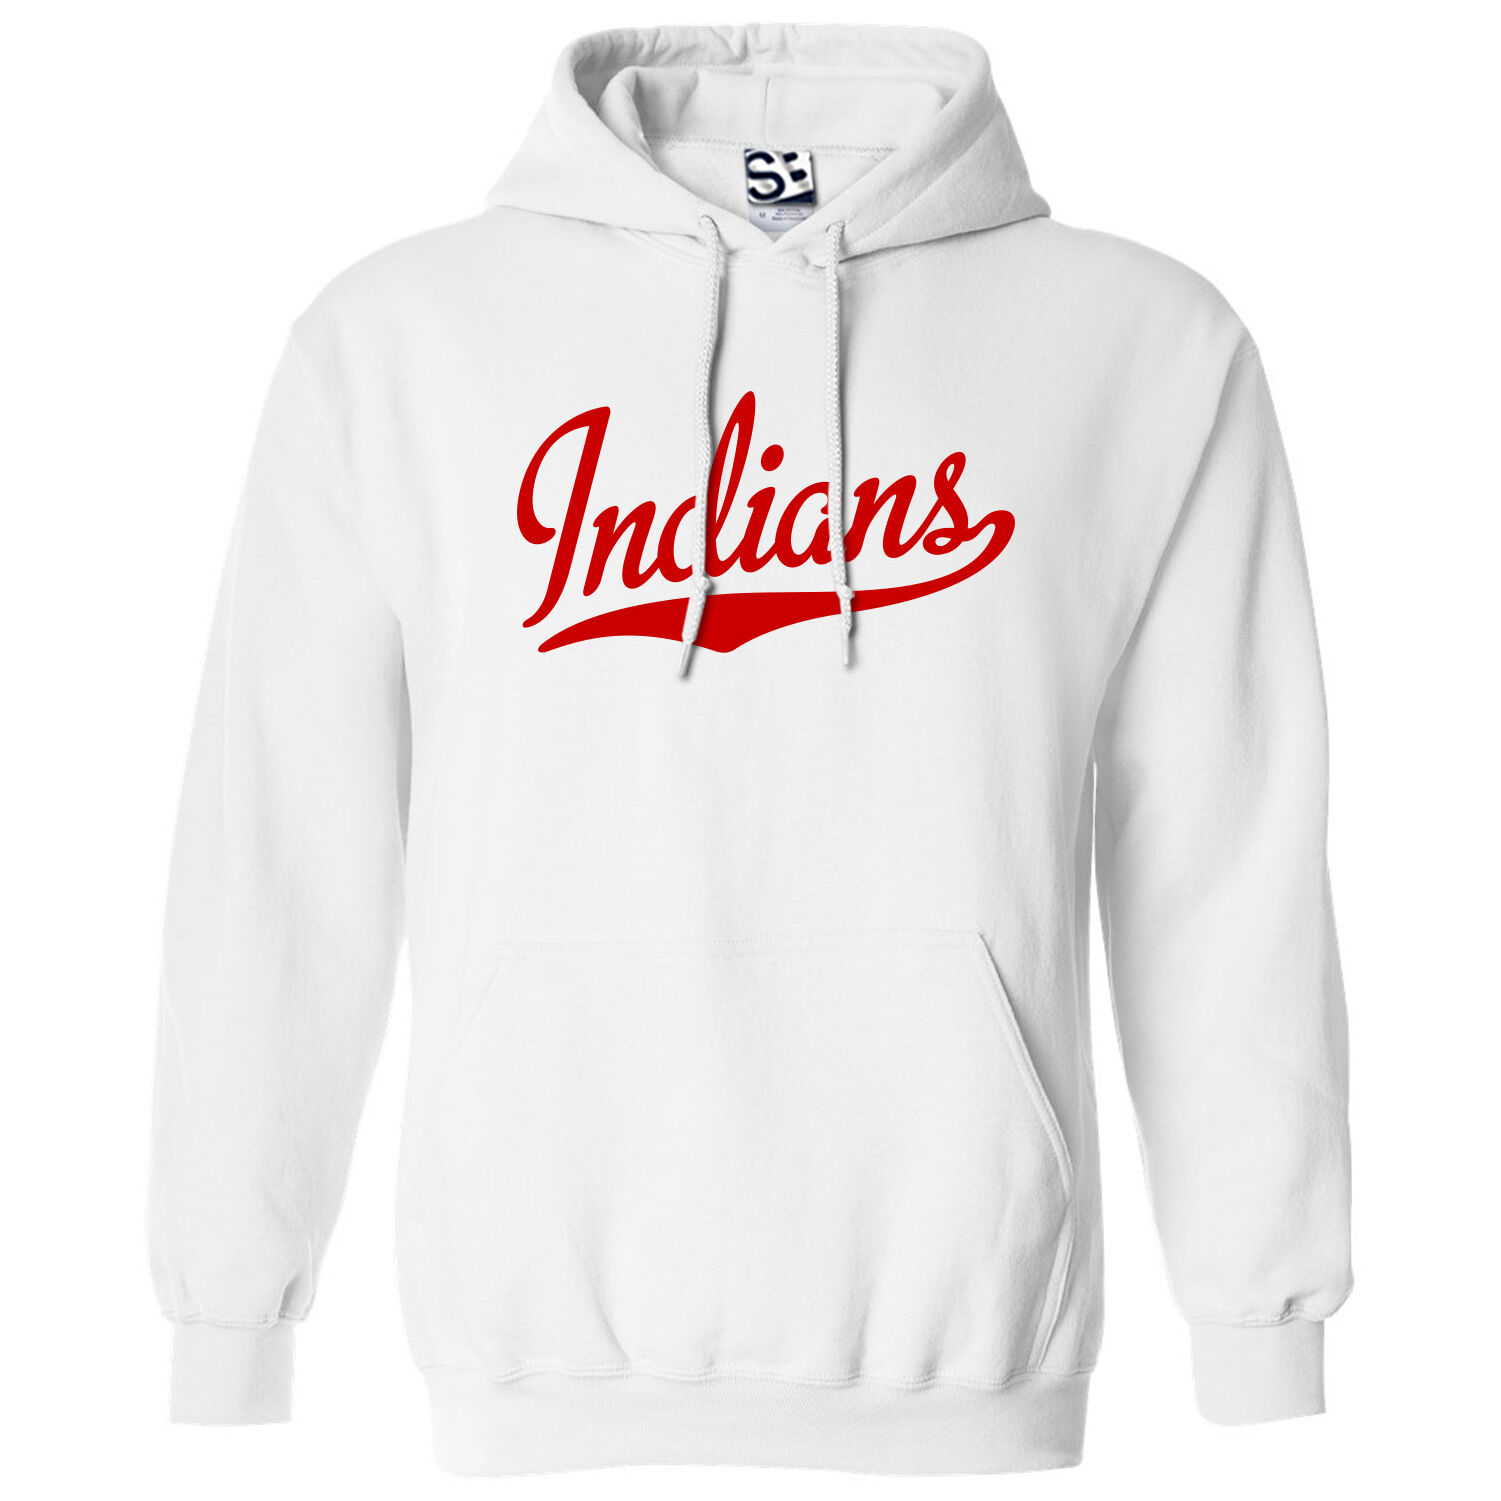 Indians Script & Tail HOODIE - Hooded School Sports Team Sweatshirt - All Farbes